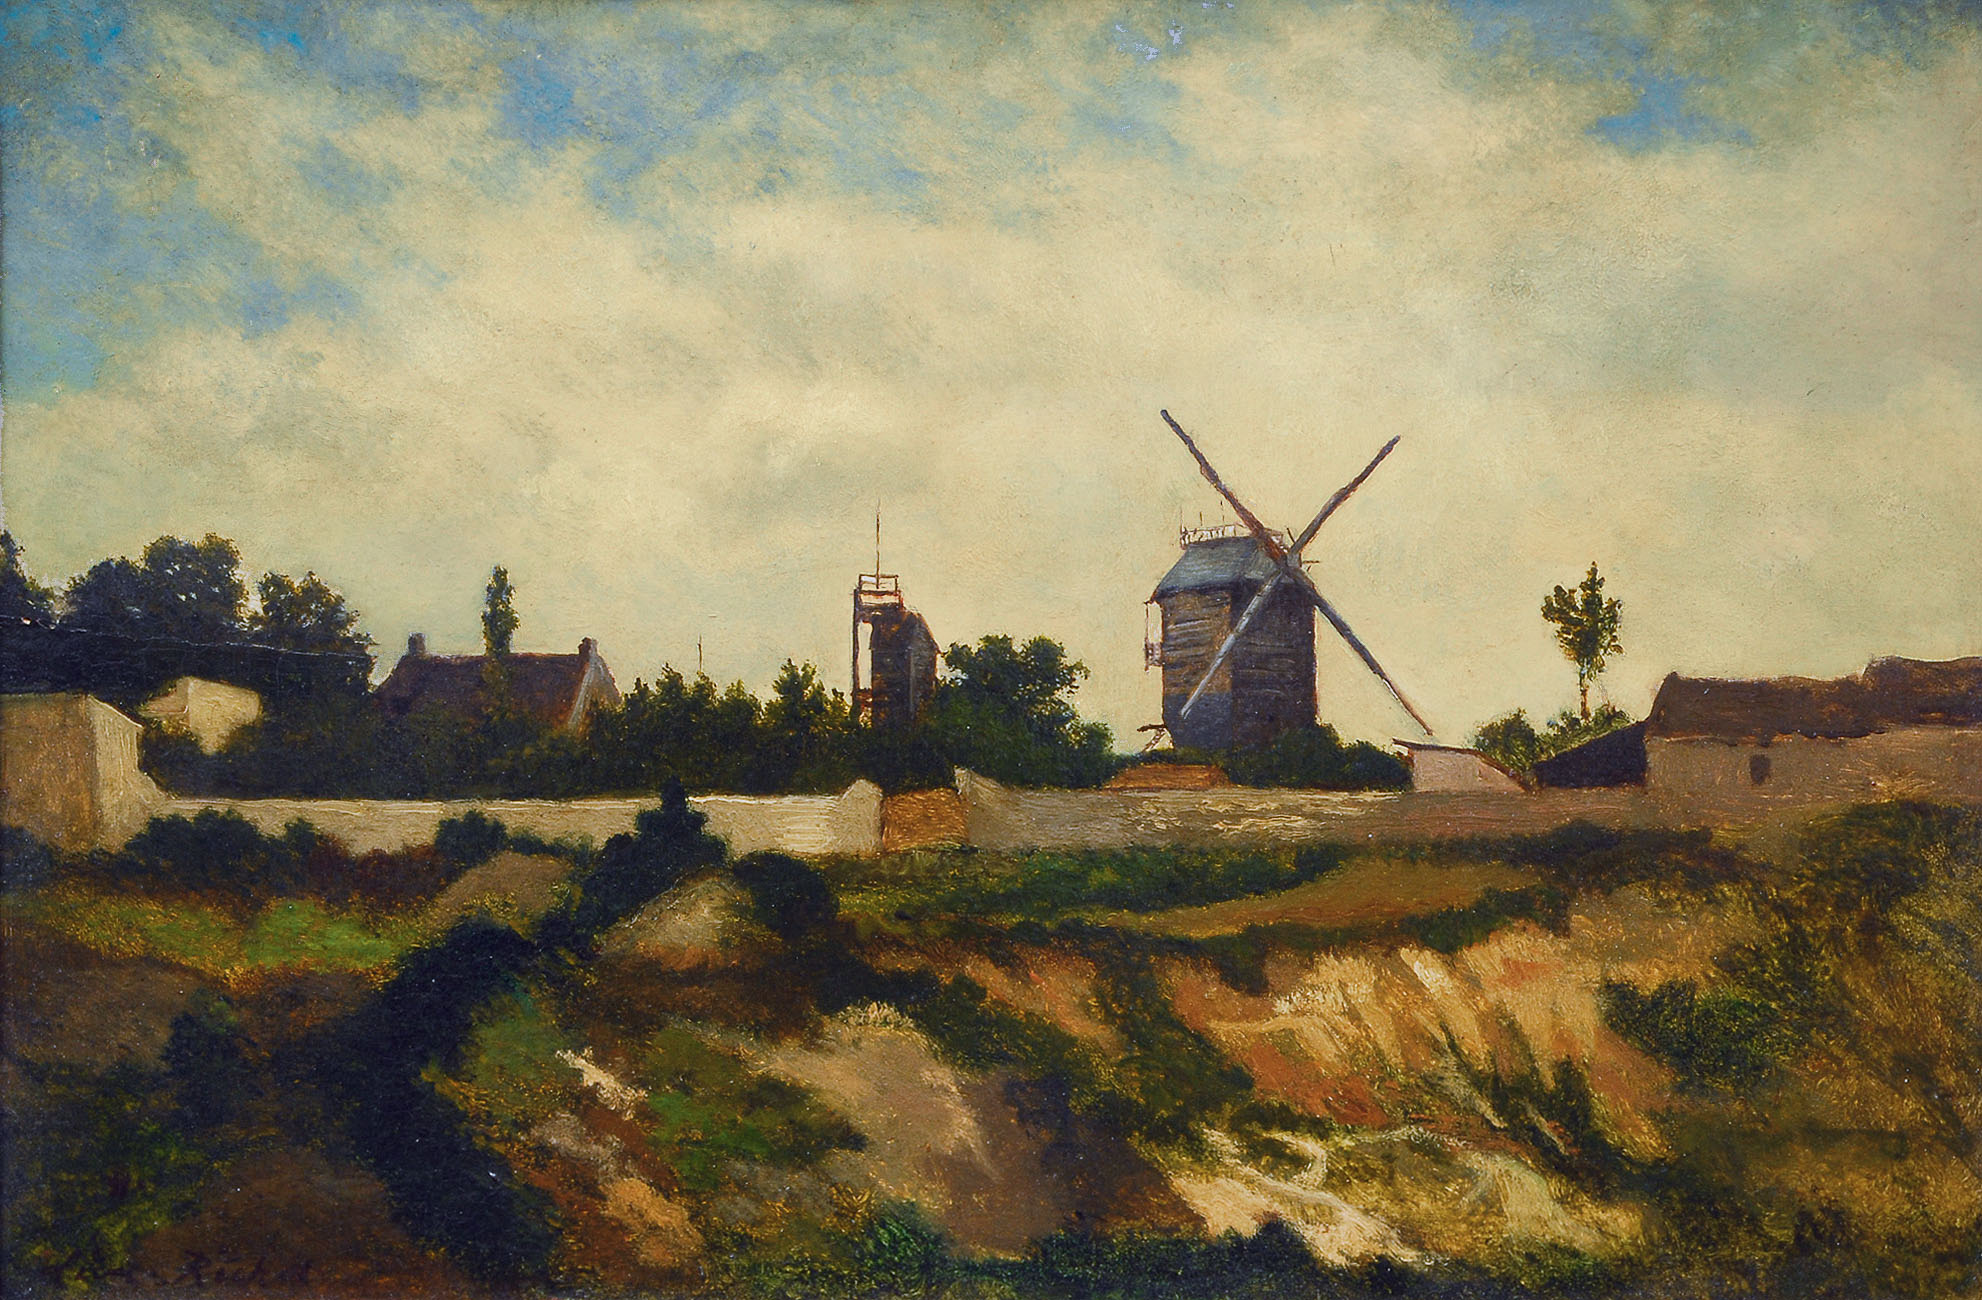 Landscape with windmill and houses